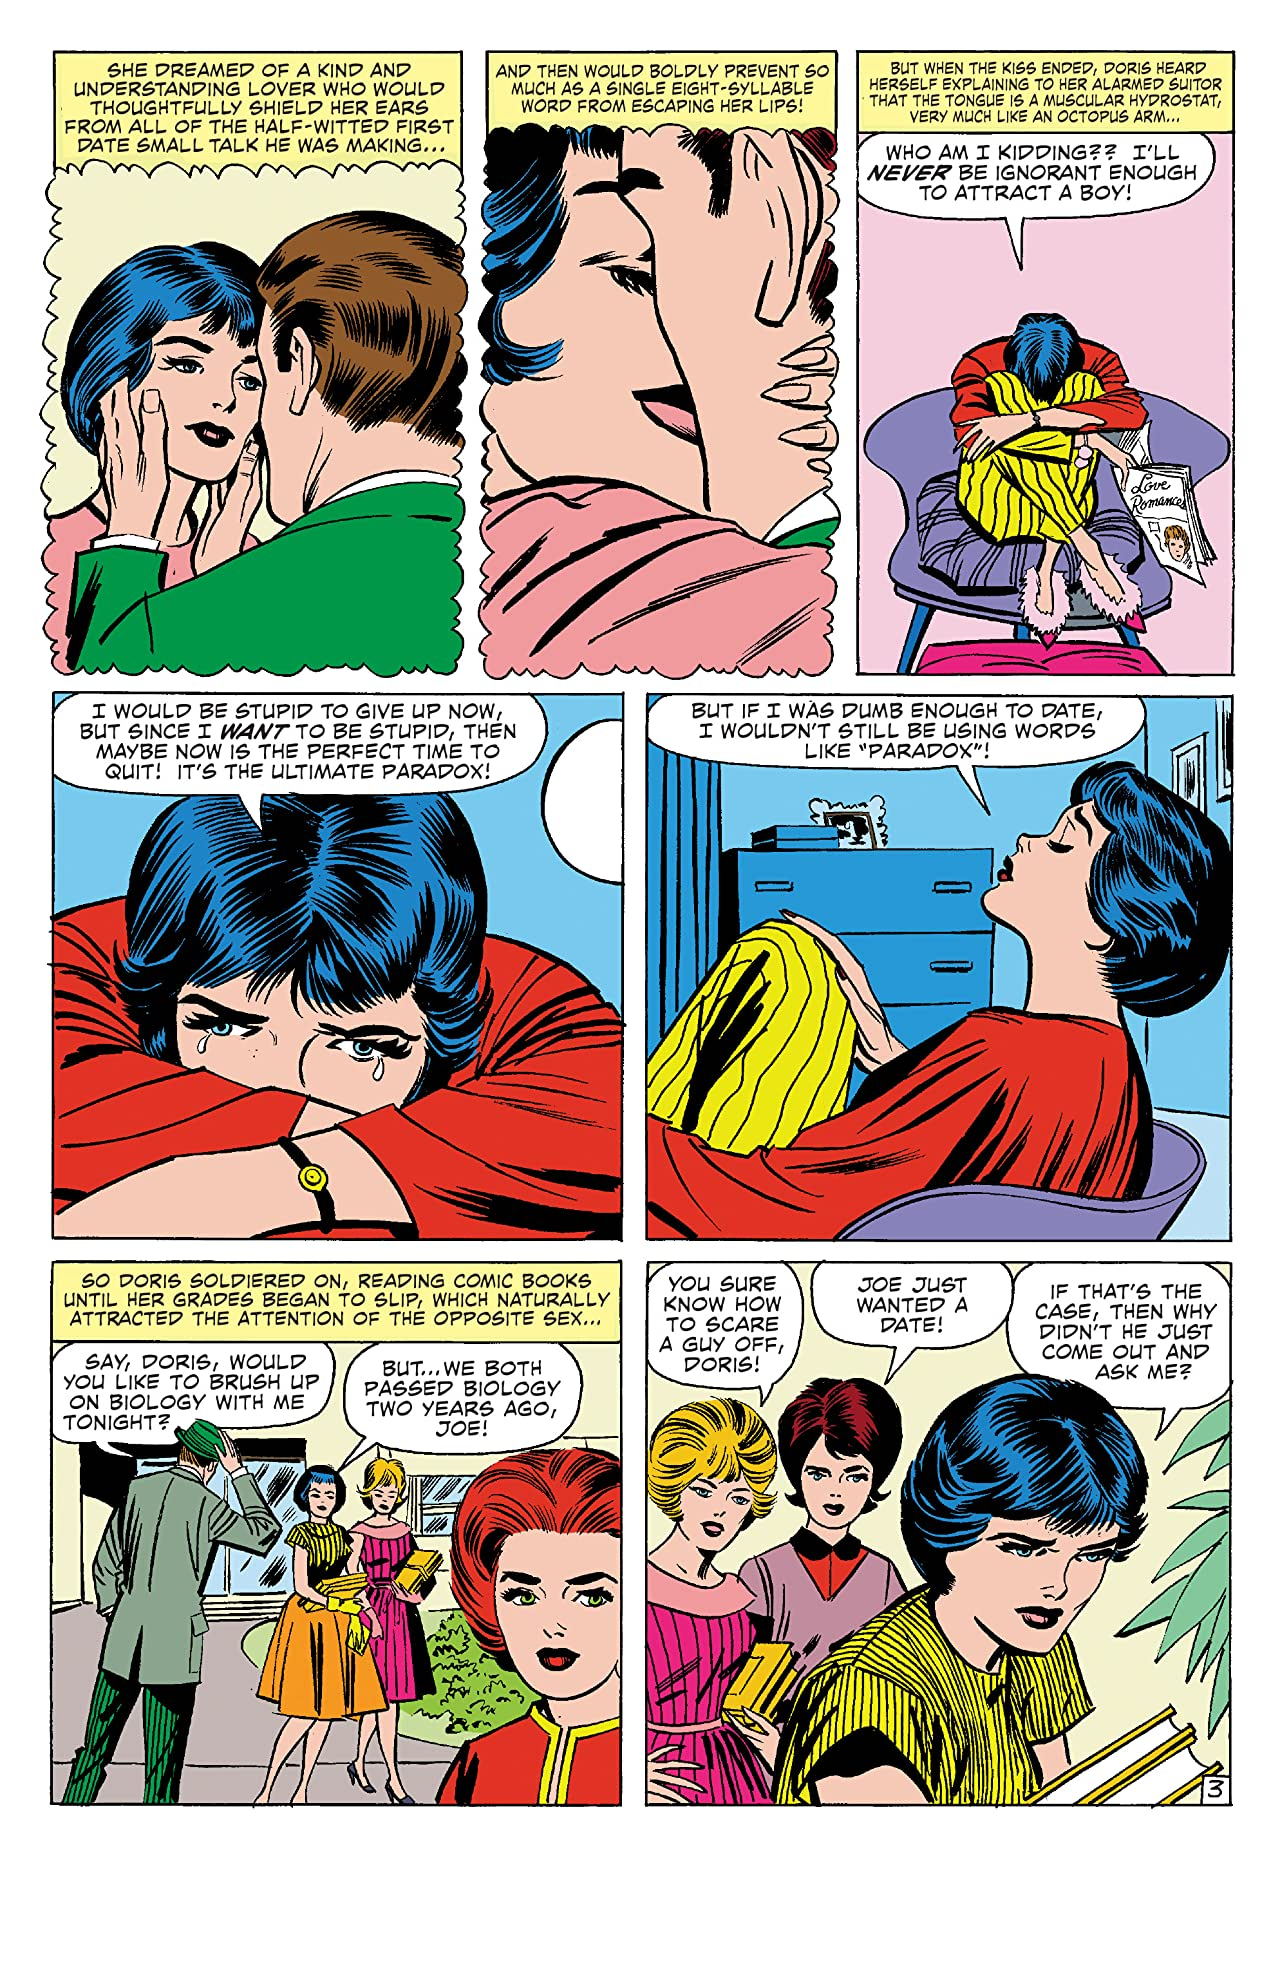 Marvel Romance Redux: Restraining Orders Are For Other Girls (2006) #1